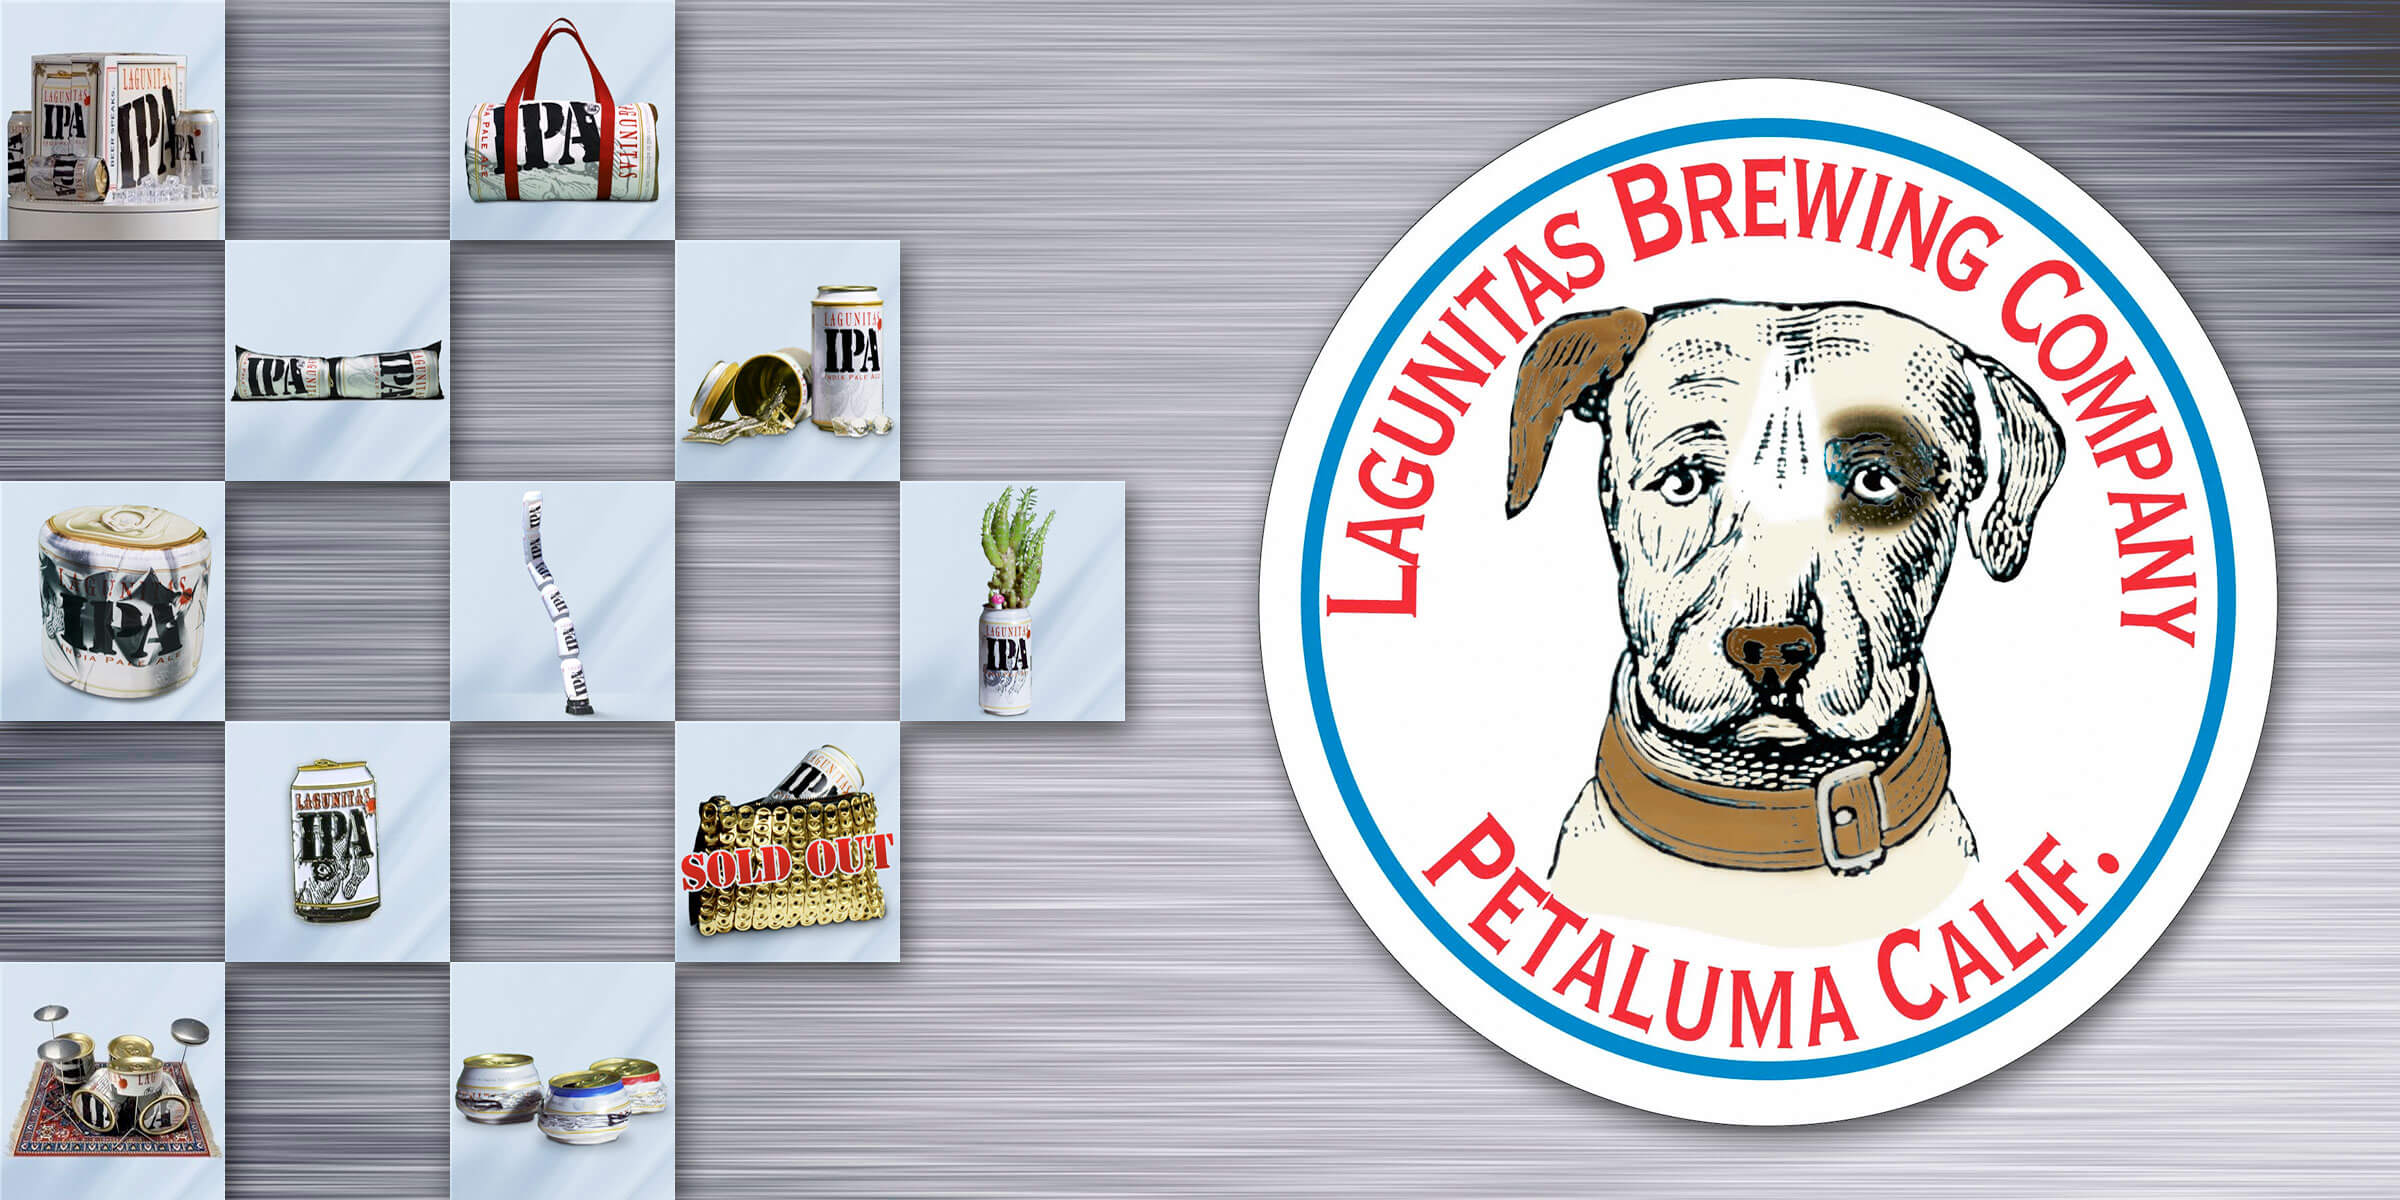 """Lagunitas is making big plans as the brewery transitions to an international brand but will continue to keep its focus on IPAs, as evidenced by its """"Can Shopping Network""""."""